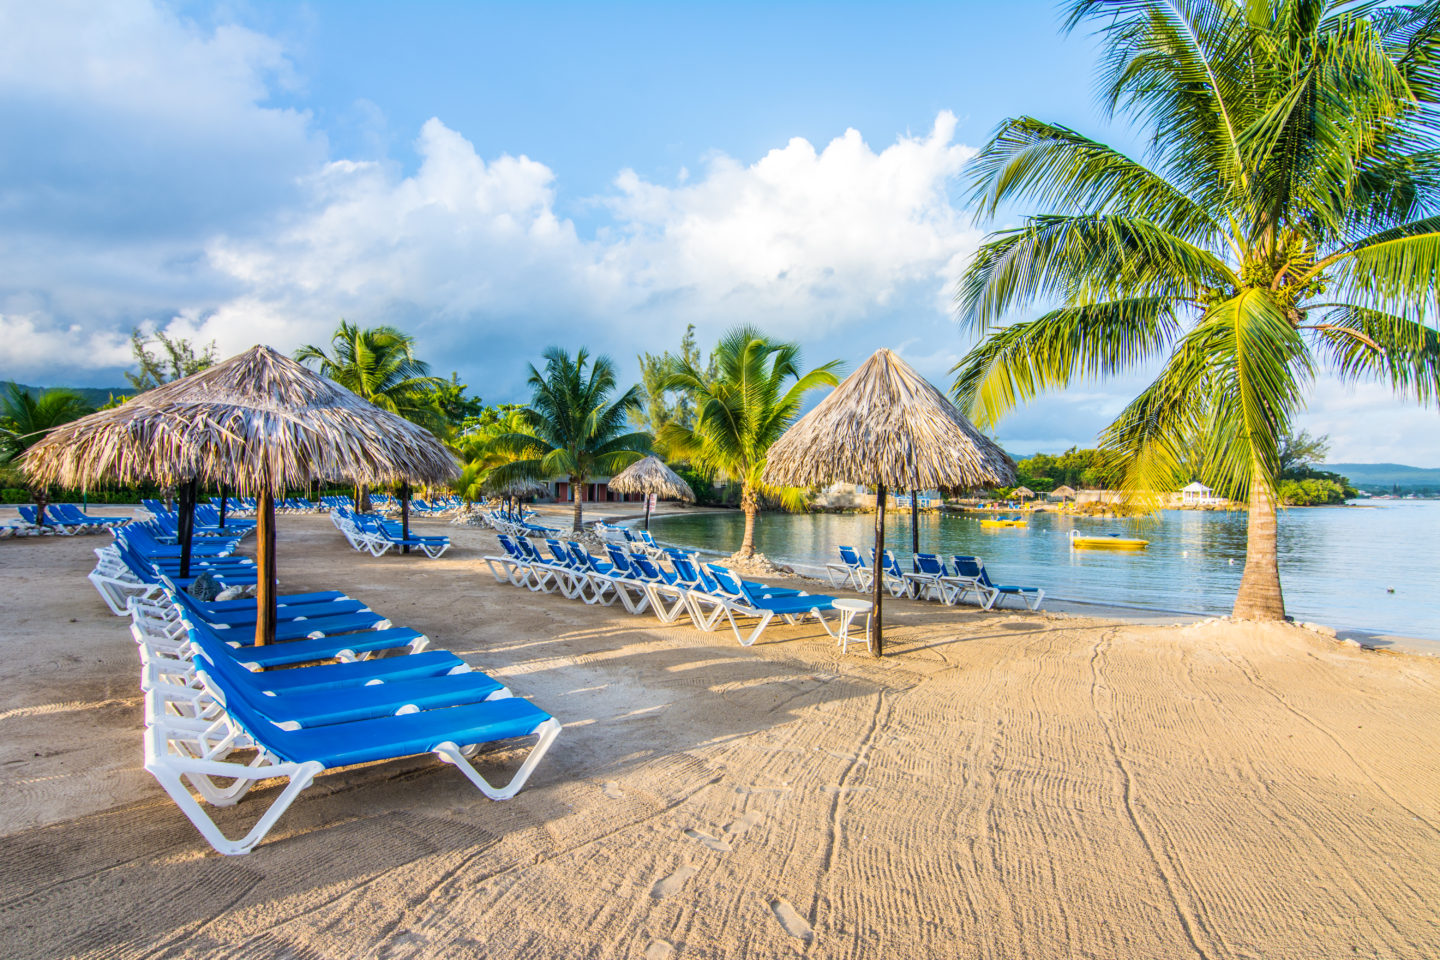 Beach with palm trees at Jewel Paradise Cove in Jamaica